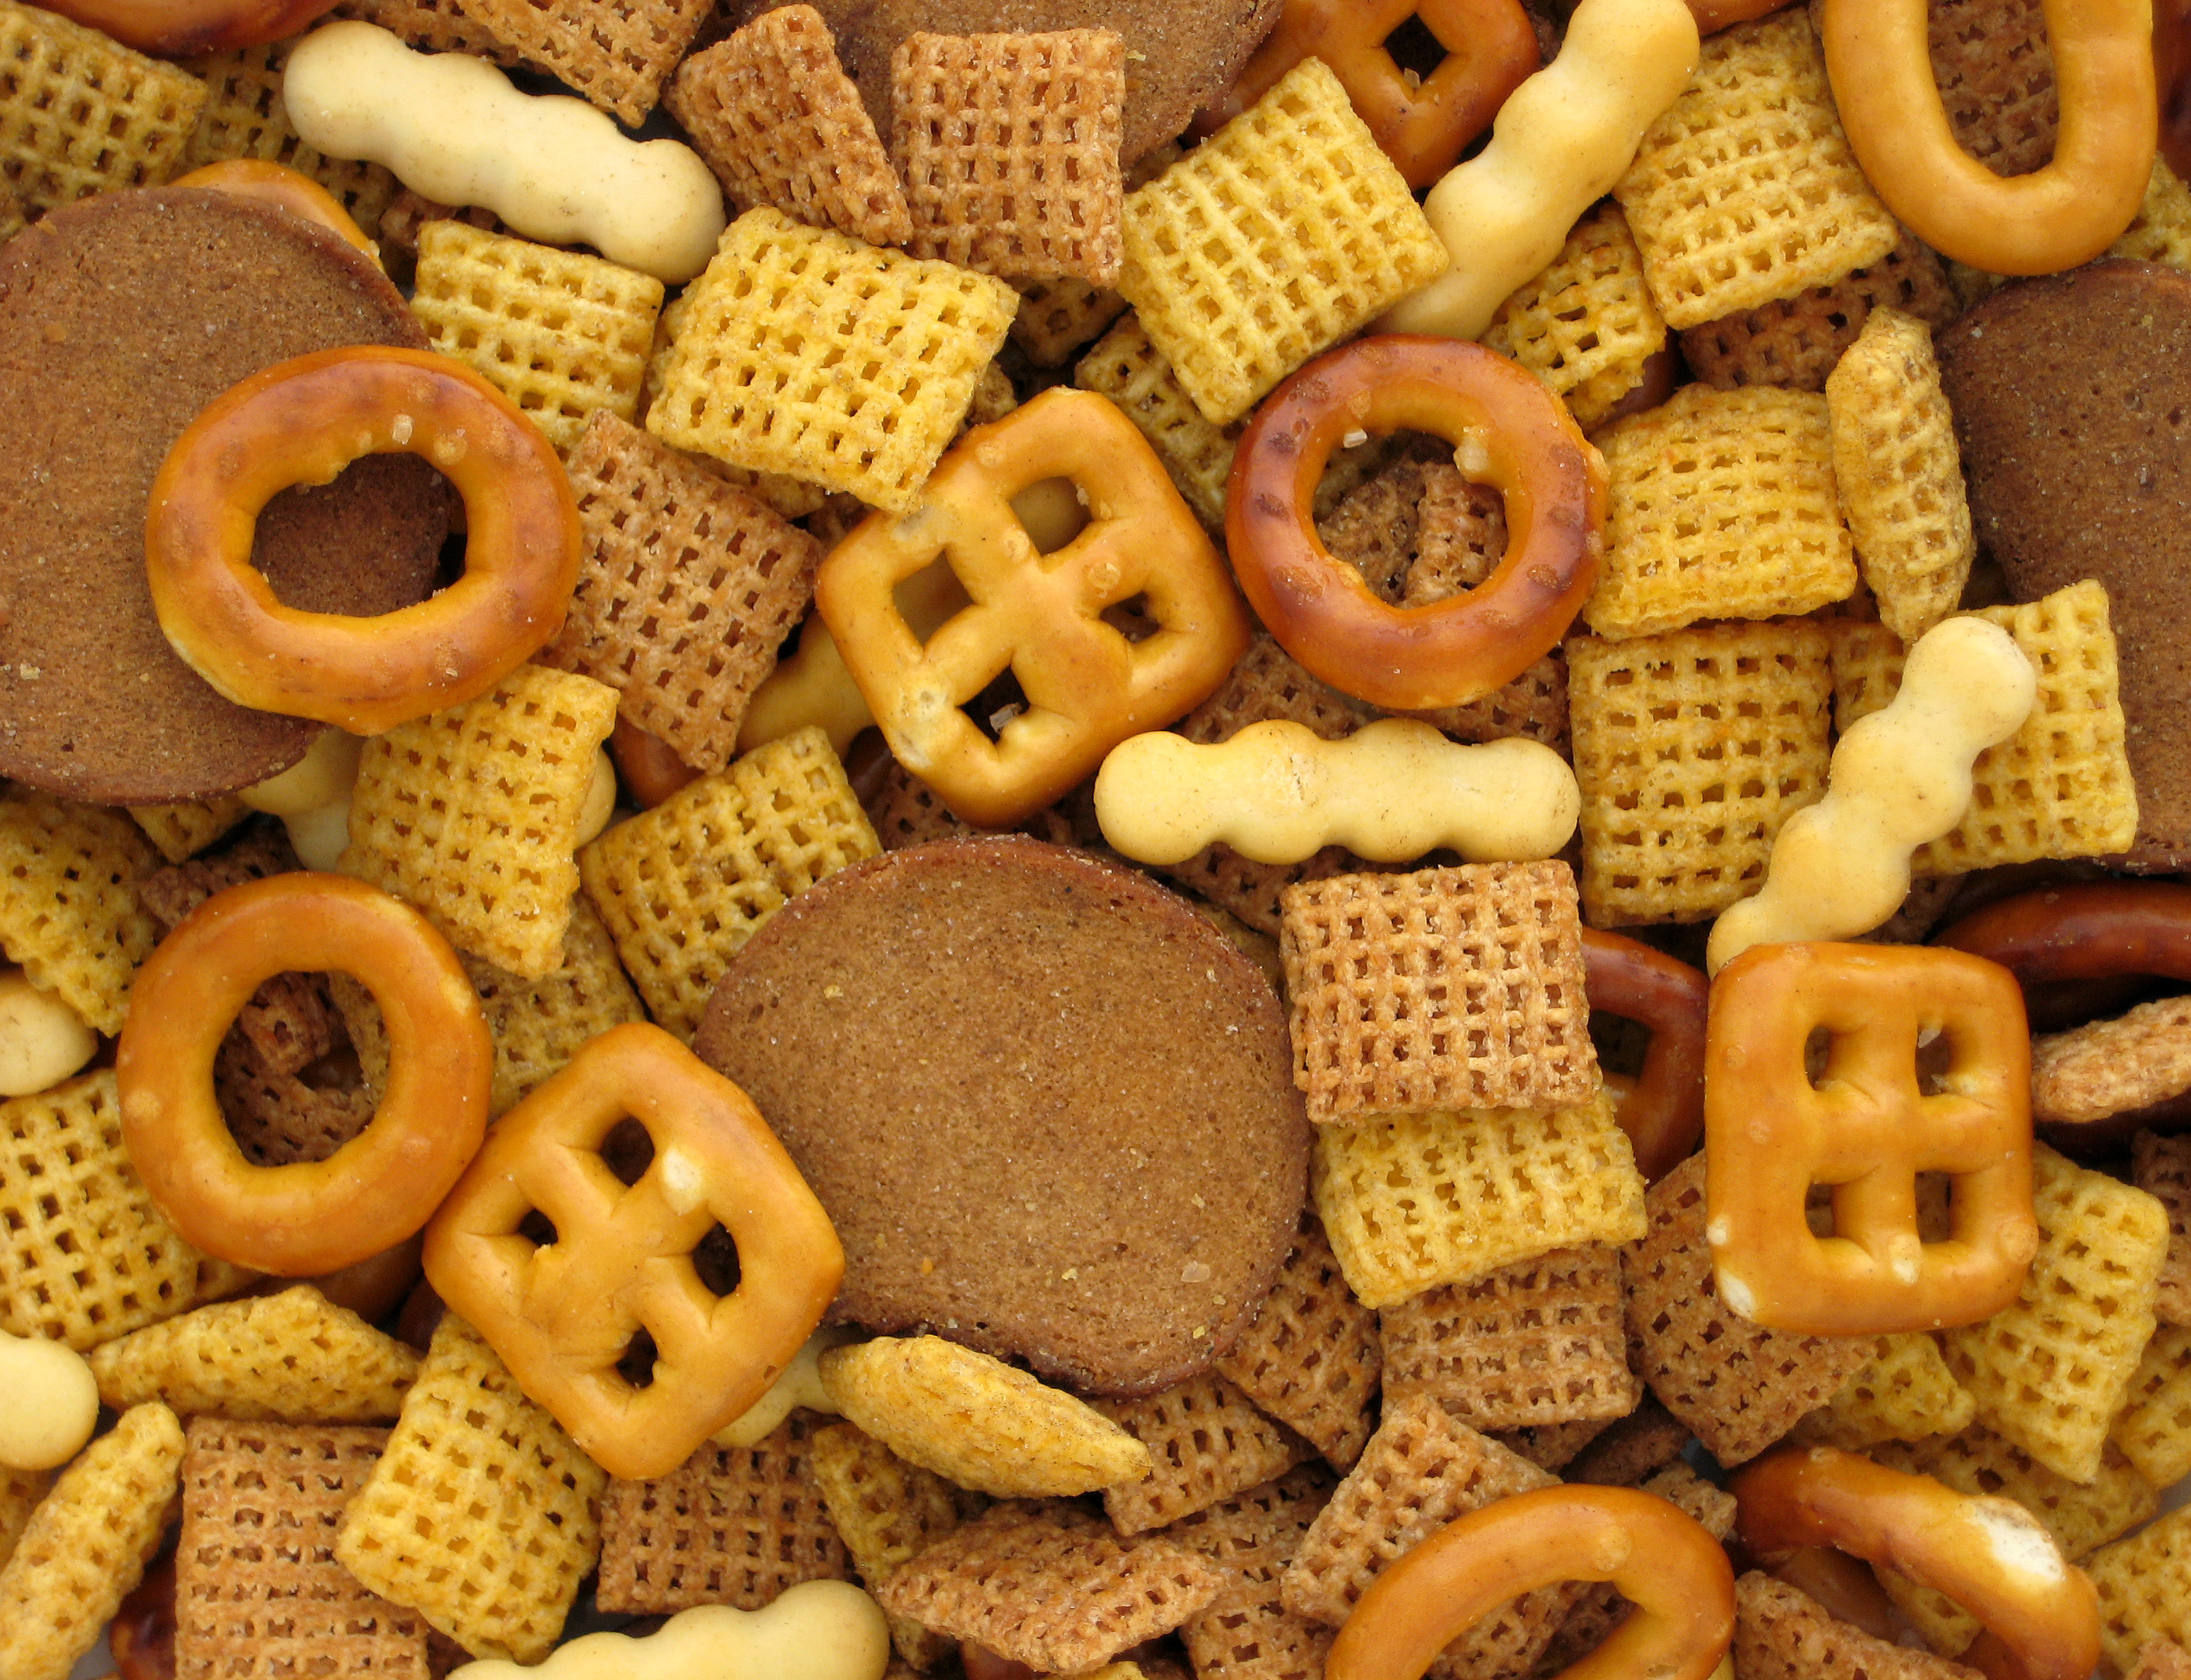 File:Chex-Mix-Pile.jpg - Wikipedia, the free encyclopedia